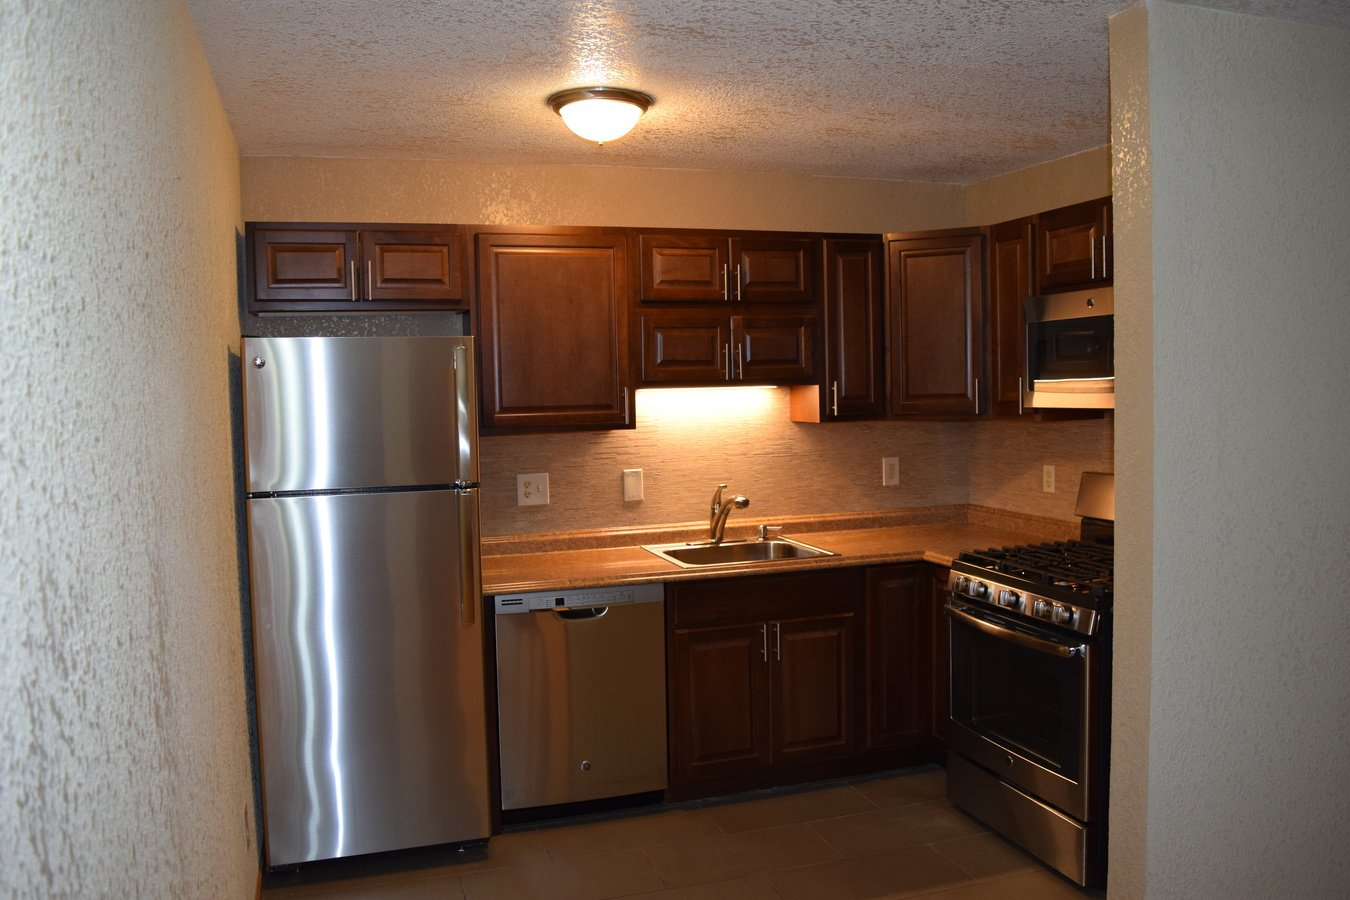 2 Bedrooms 1 Bathroom Apartment for rent at 319 8th St Se in Minneapolis, MN